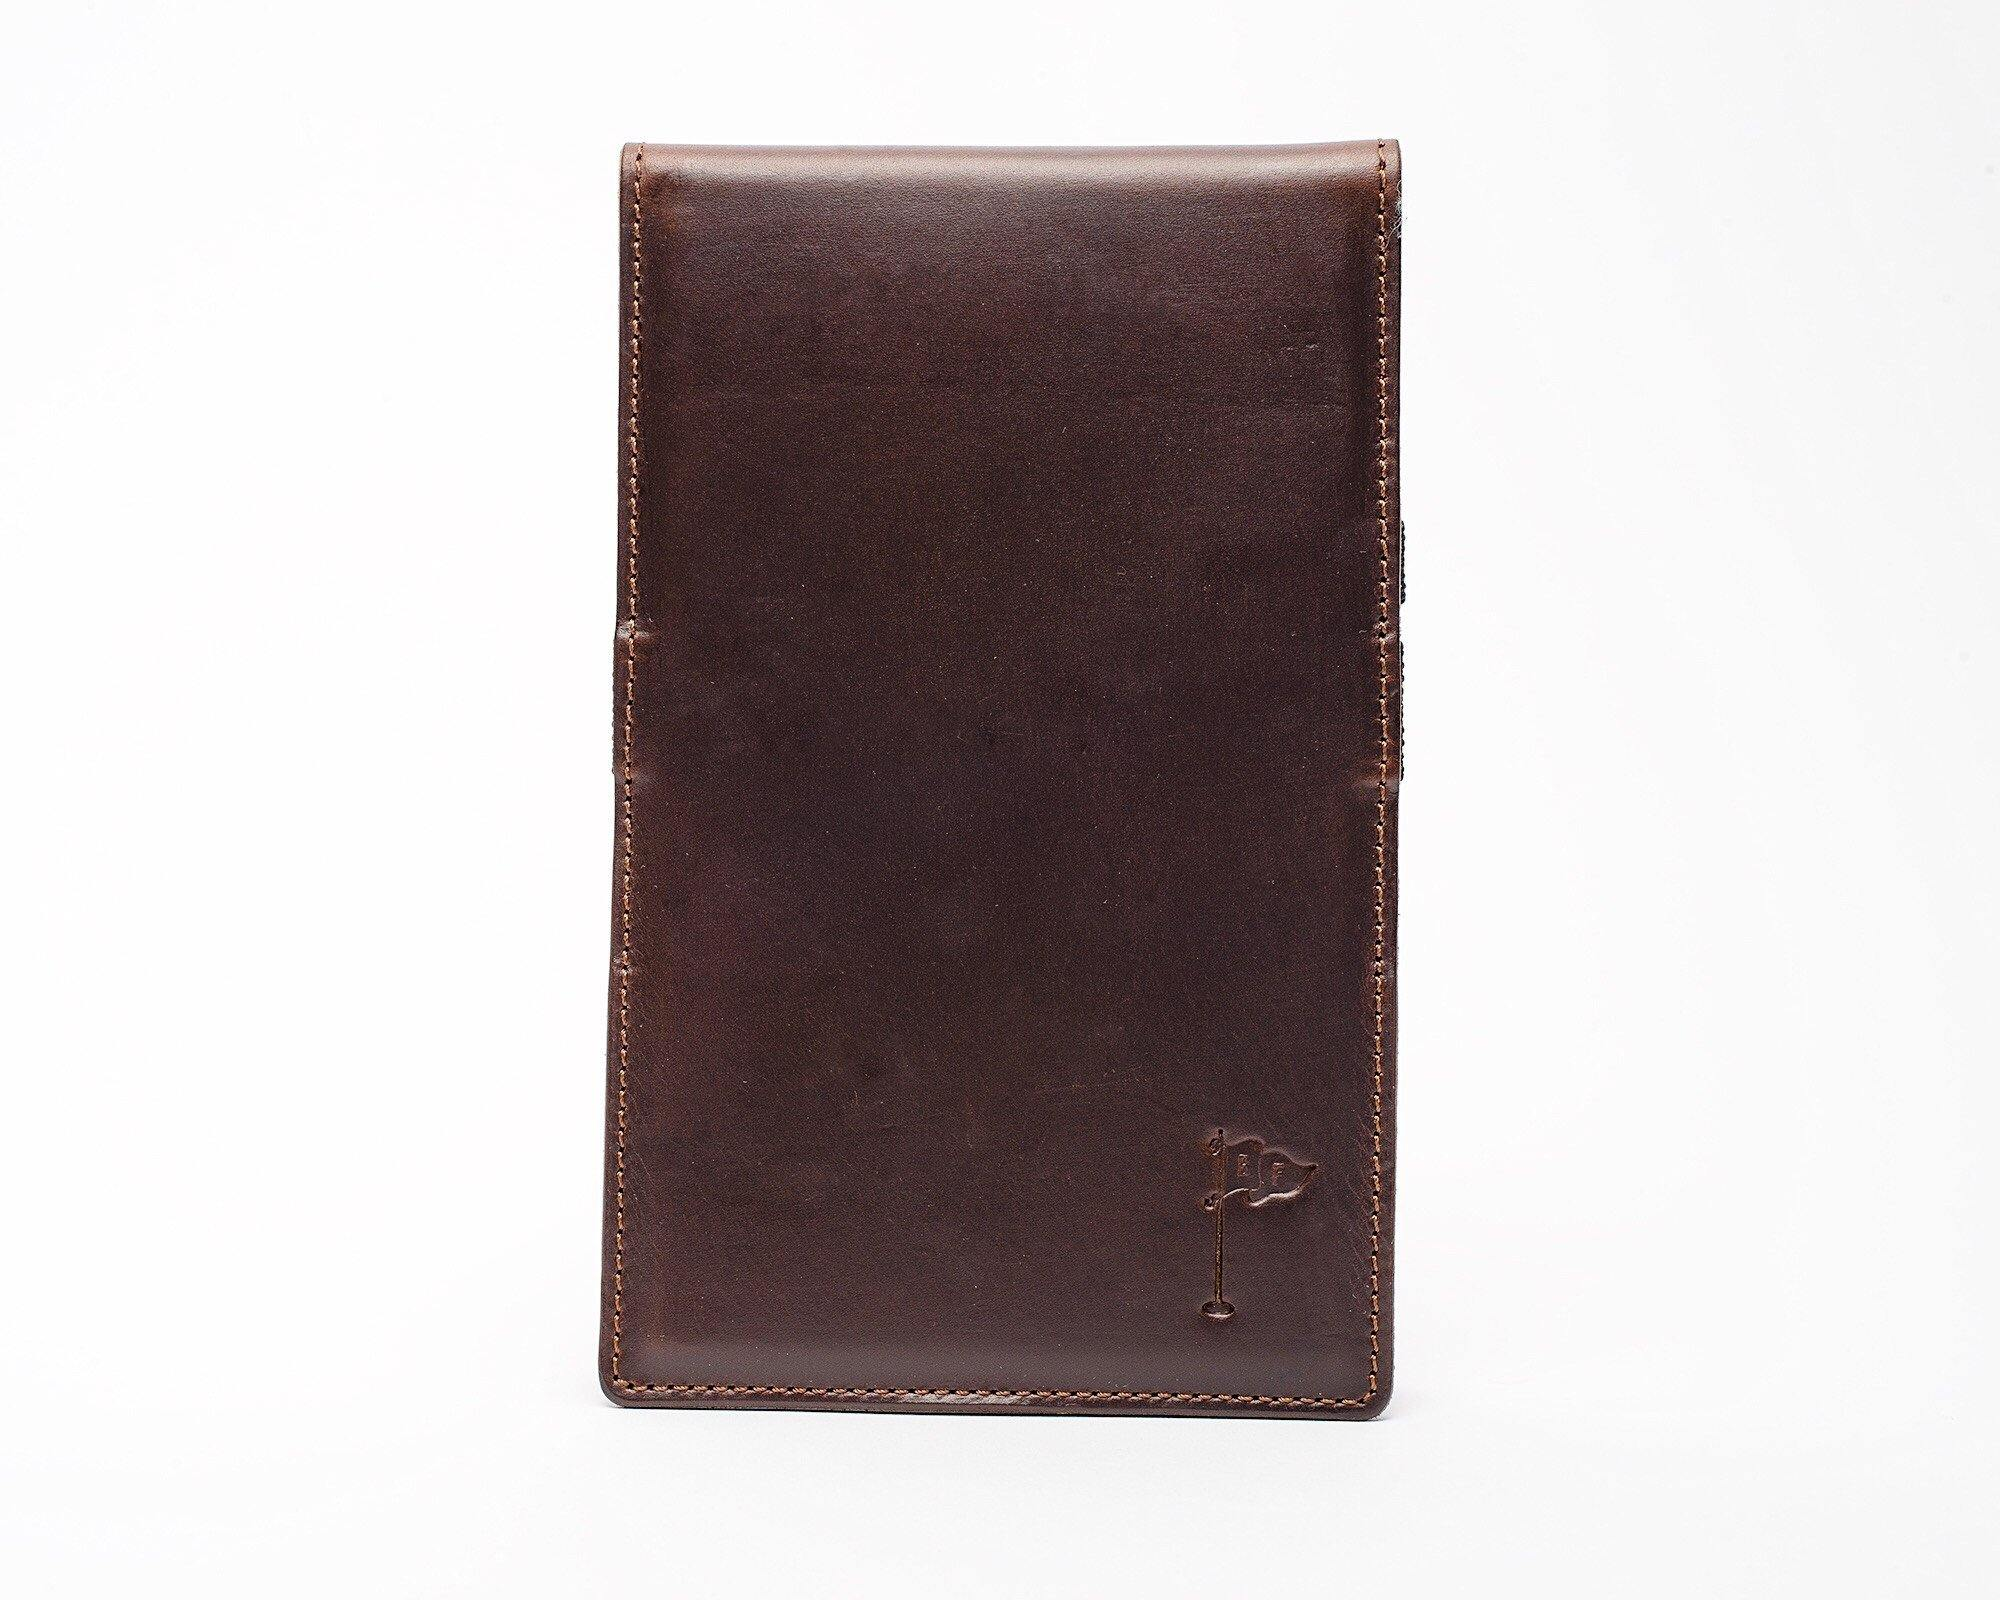 Horween Collection Leather Golf Scorecard Holder/ Yardage Book in Chromexel Dark Brown